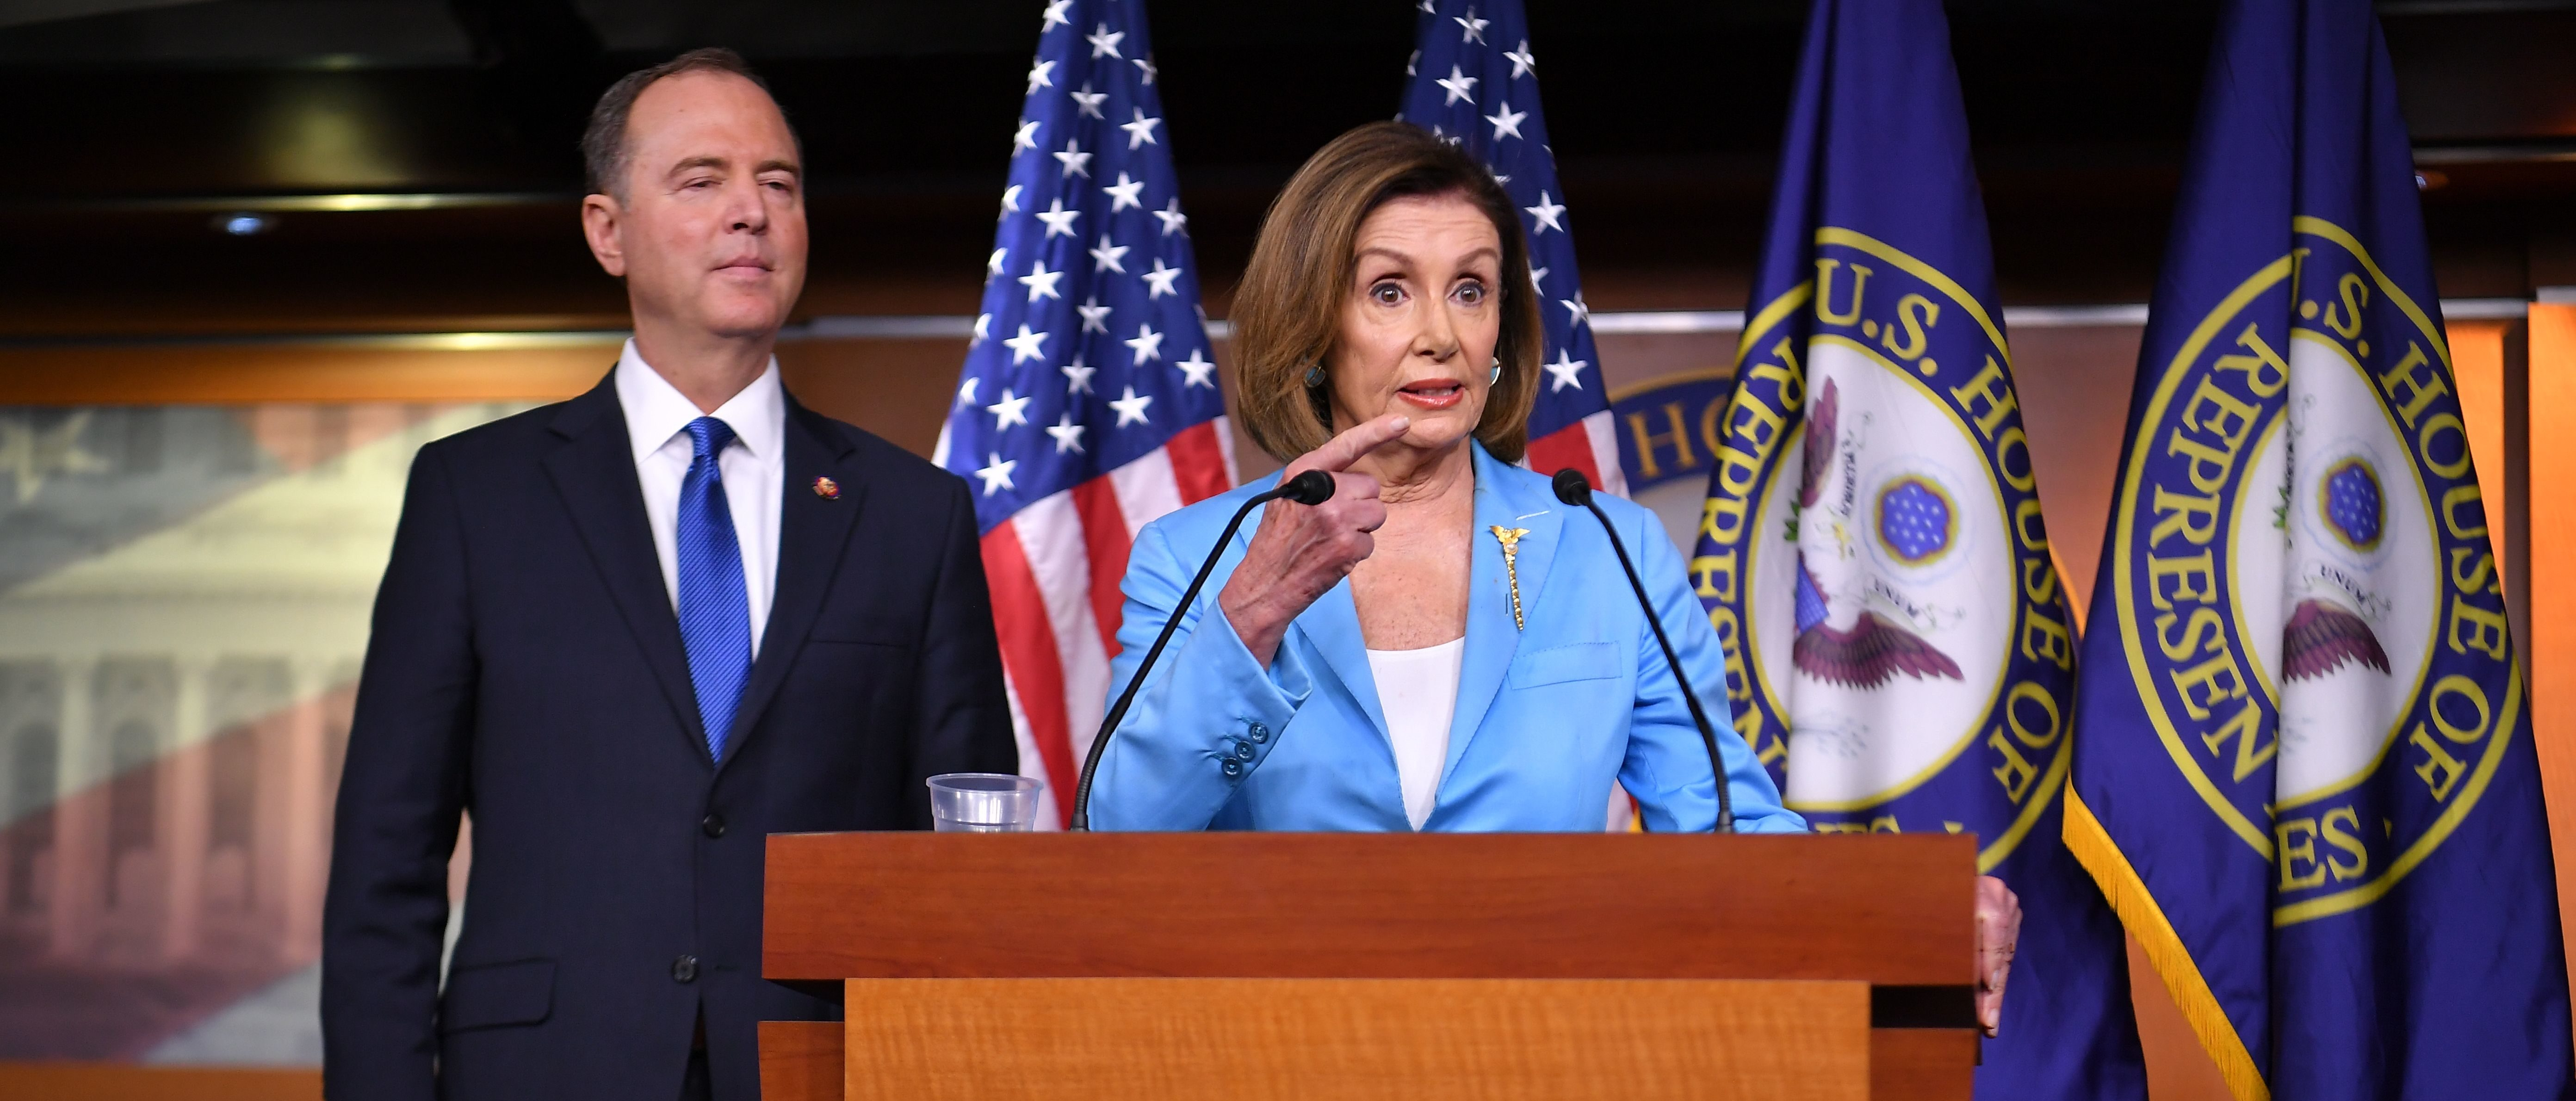 House Speaker Nancy Pelosi and House Intelligence Committee Chair Adam Schiff, D-CA, speak during a press conference in the House Studio of the US Capitol in Washington, DC on October 2, 2019. (Photo by MANDEL NGAN/AFP via Getty Images)